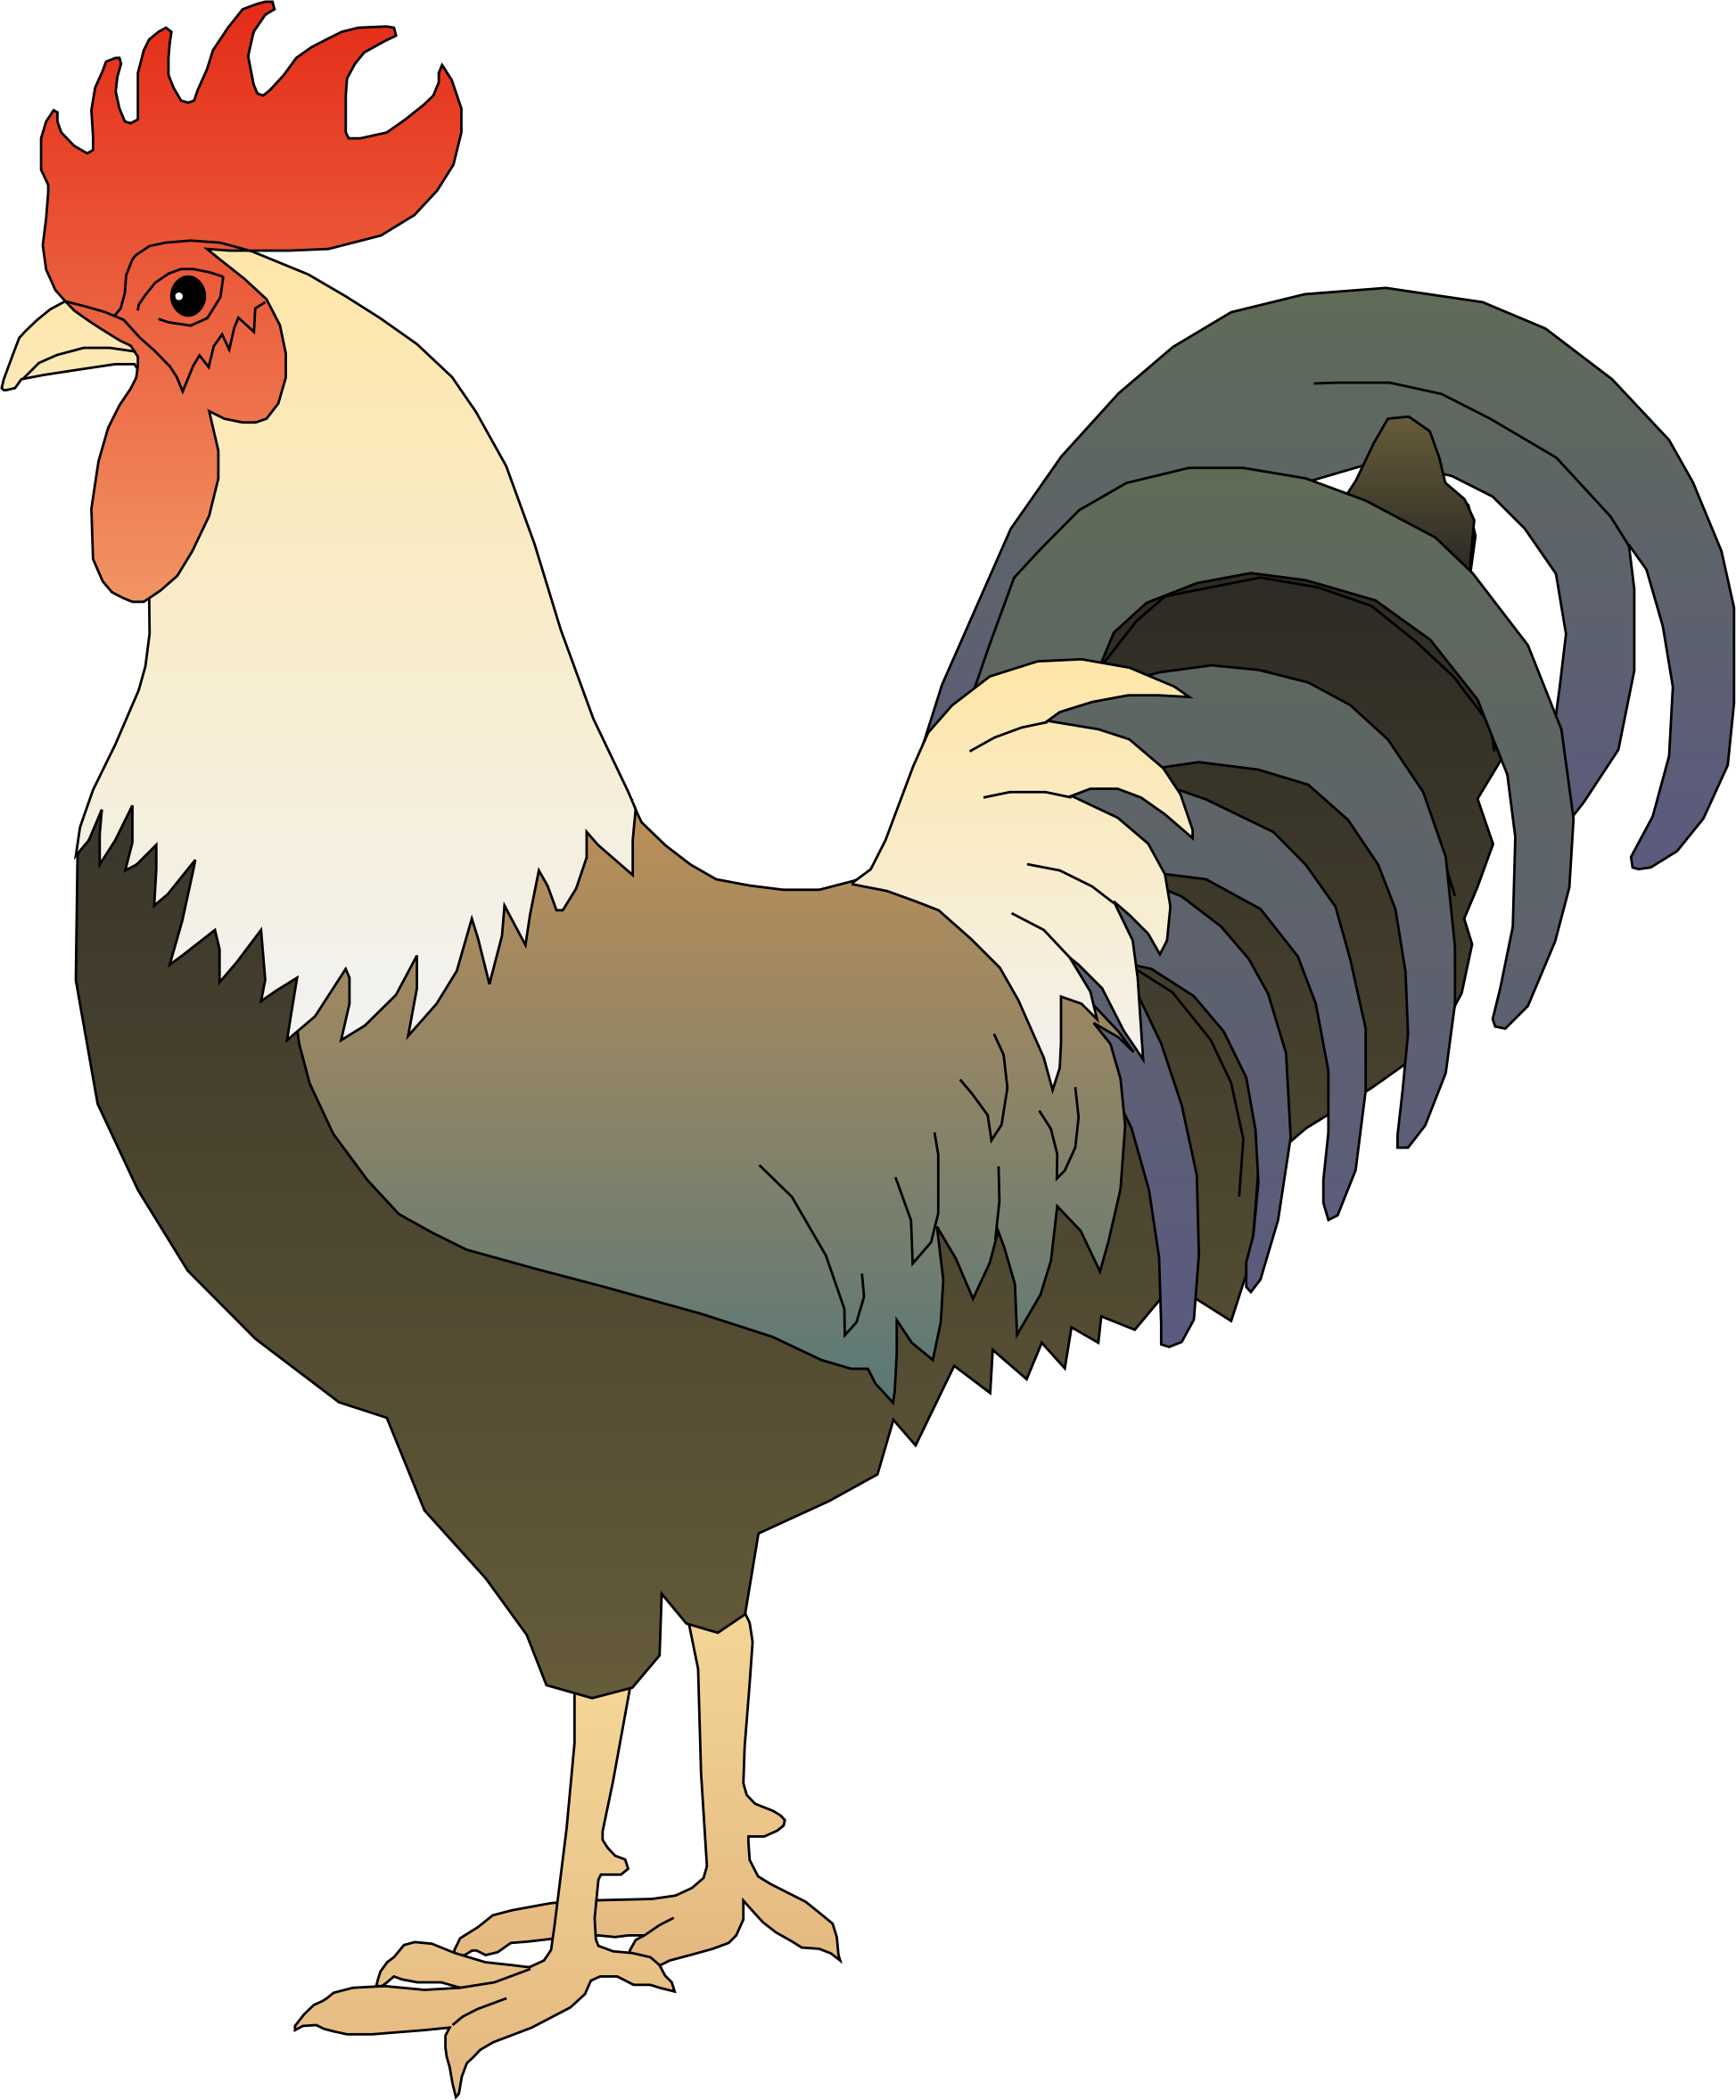 Rooster clipart lame. Clip art